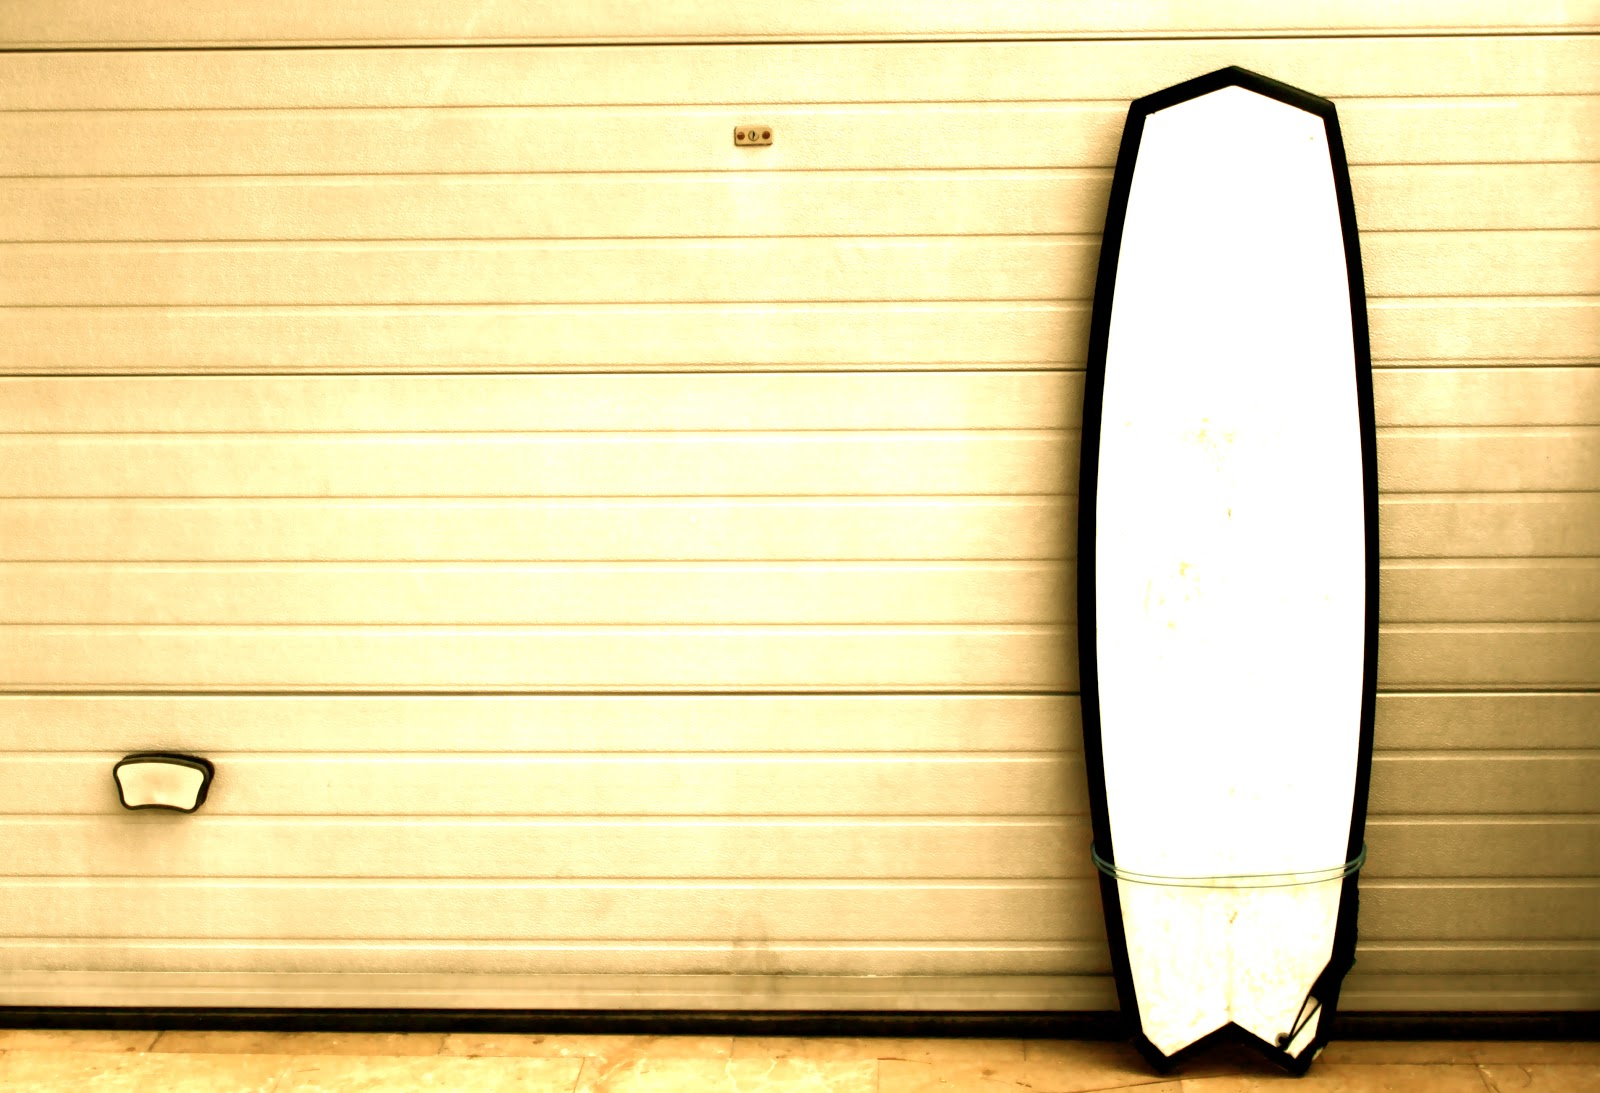 dan tomo surfboards